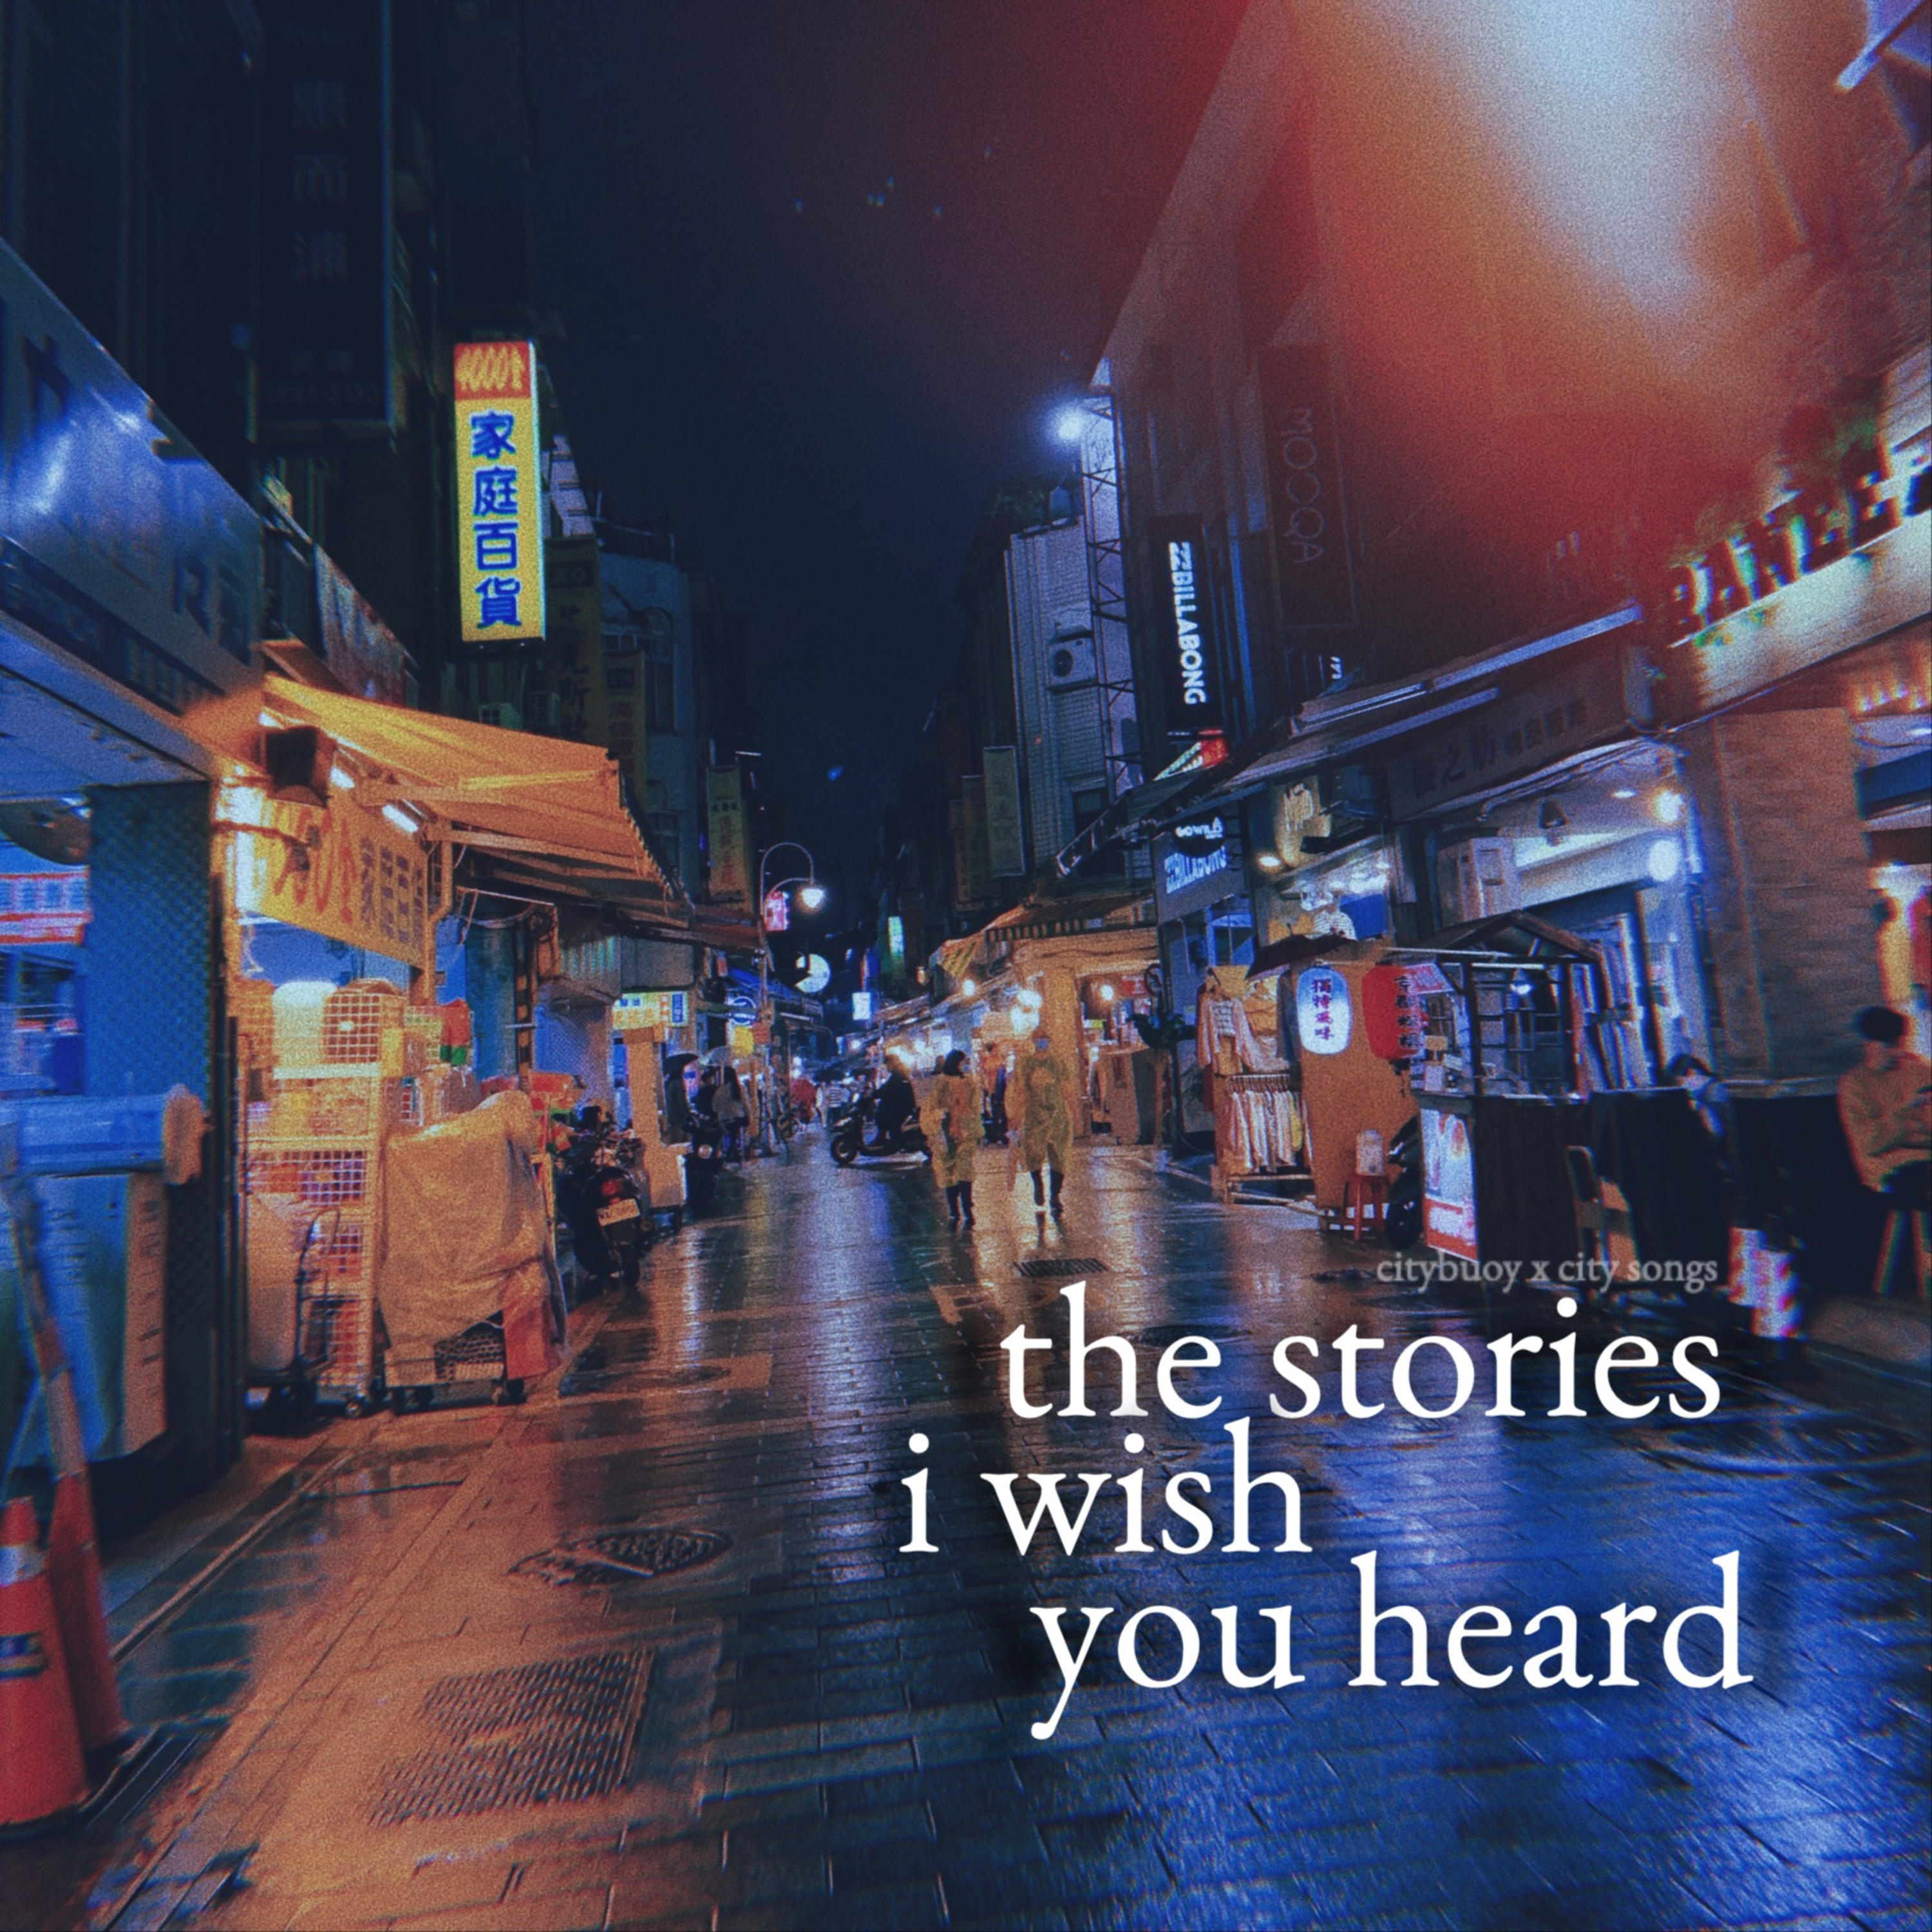 00: These are the stories that I wish you heard